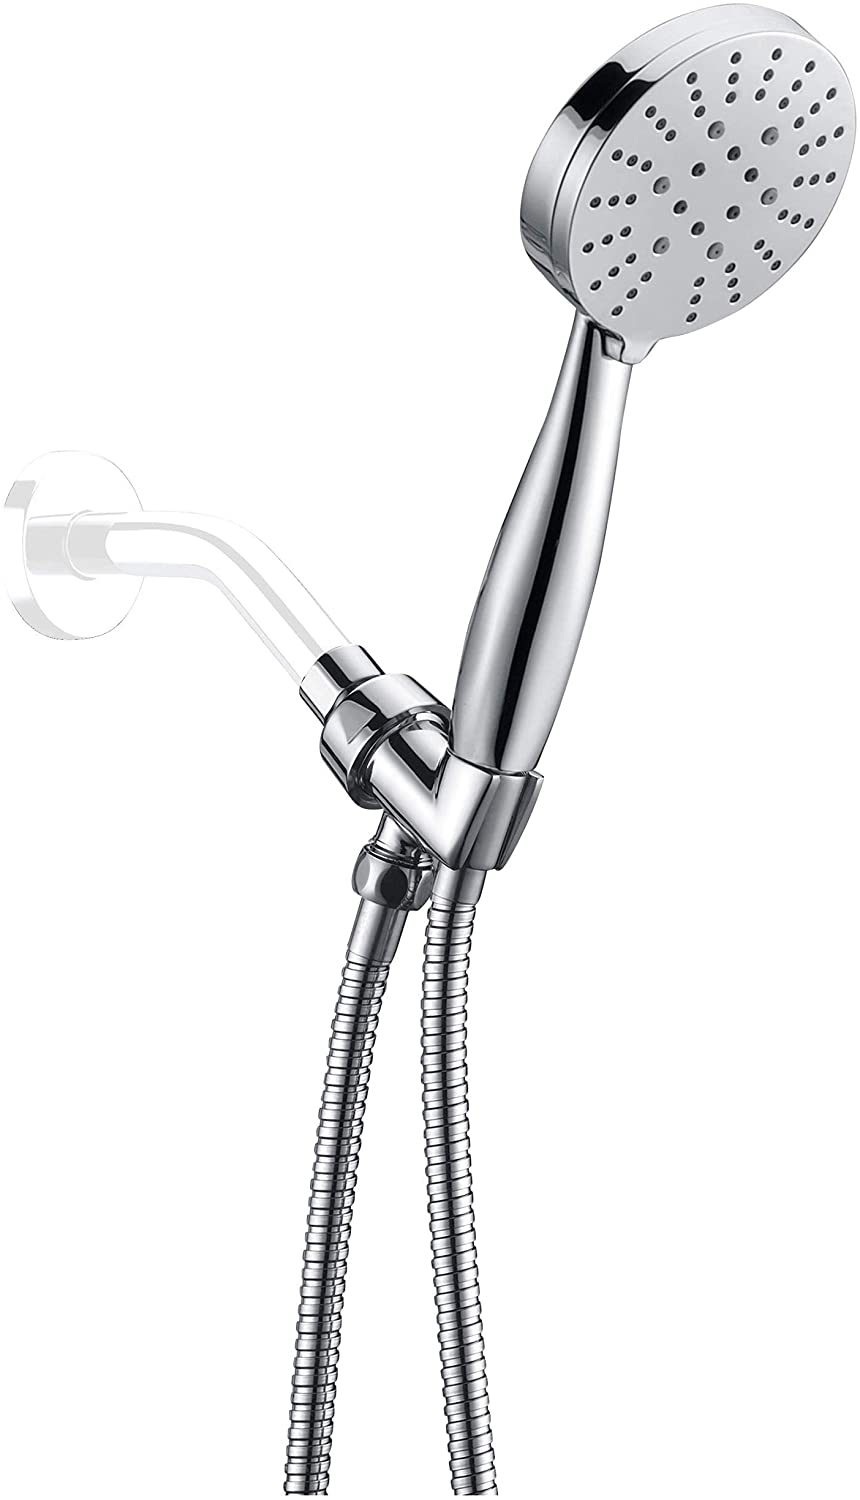 All Metal Multi-Function Hand Held Shower Head with Hose and Holder, Chrome | 3 High Pressure Sprays: Wide Spray, Massage, Mist | 2.5 GPM Flow Rate with Removable Restrictor